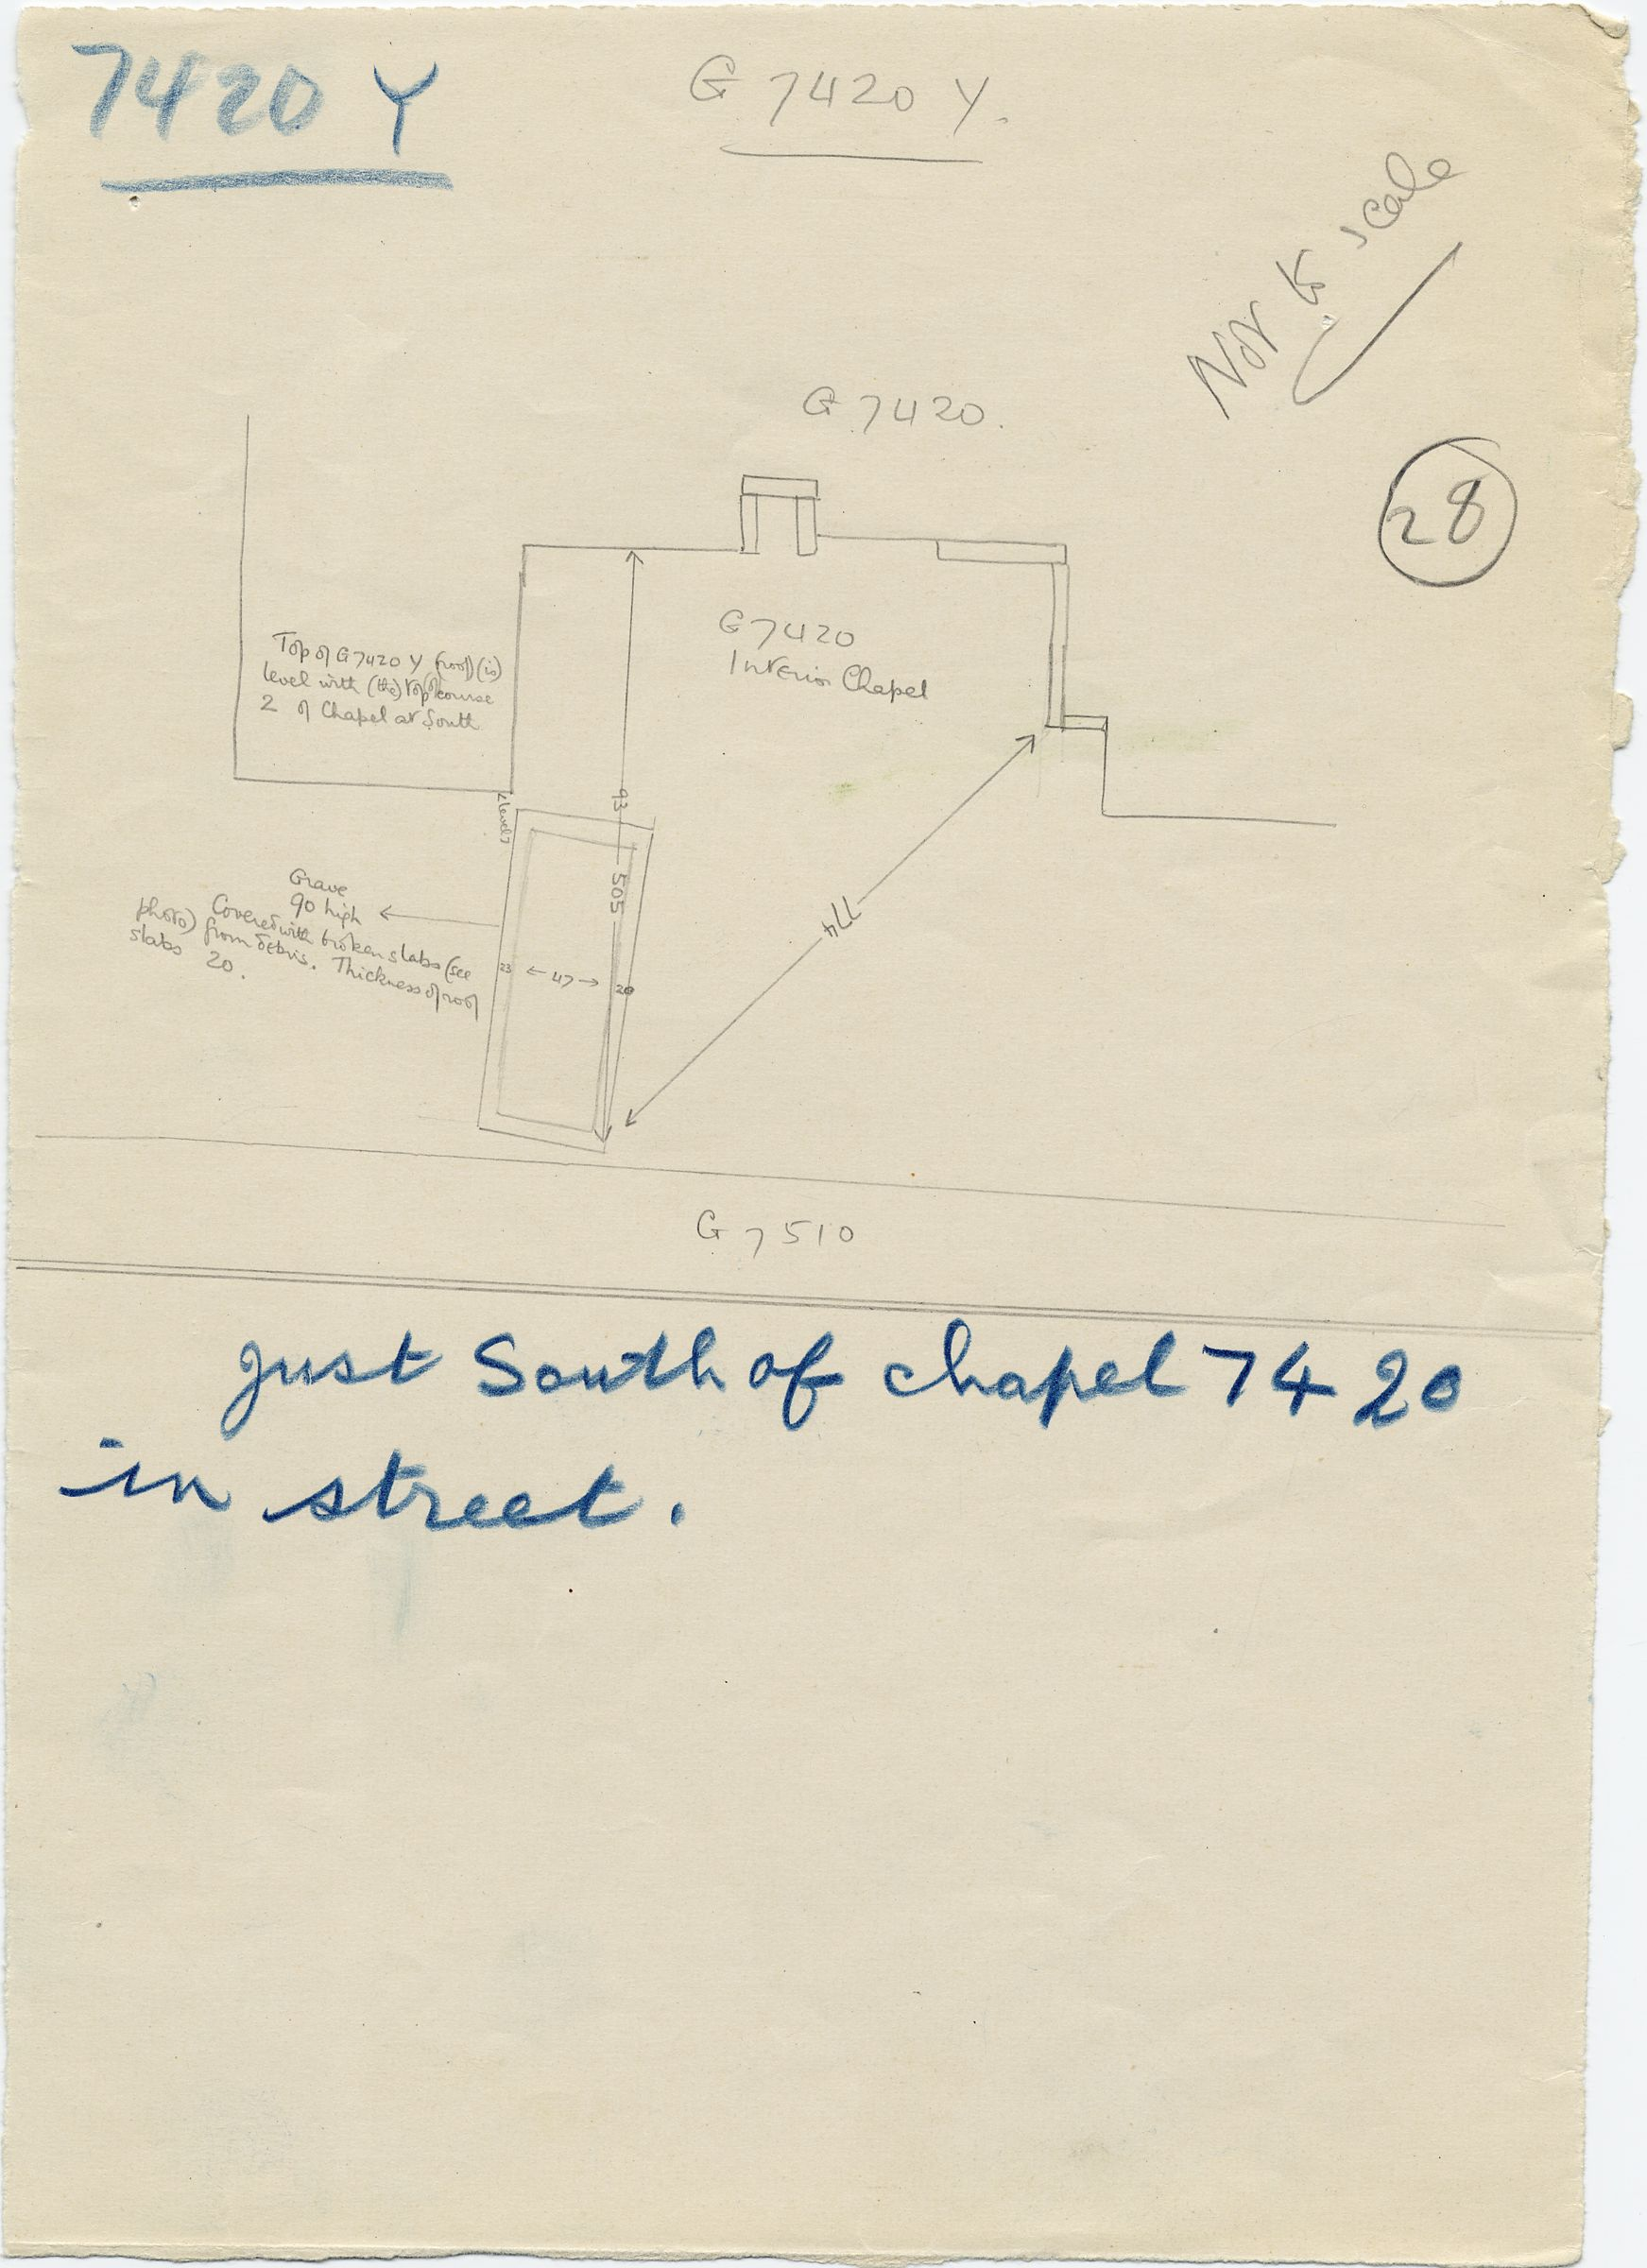 Maps and plans: G 7410-7420: G 7420, Shaft Y